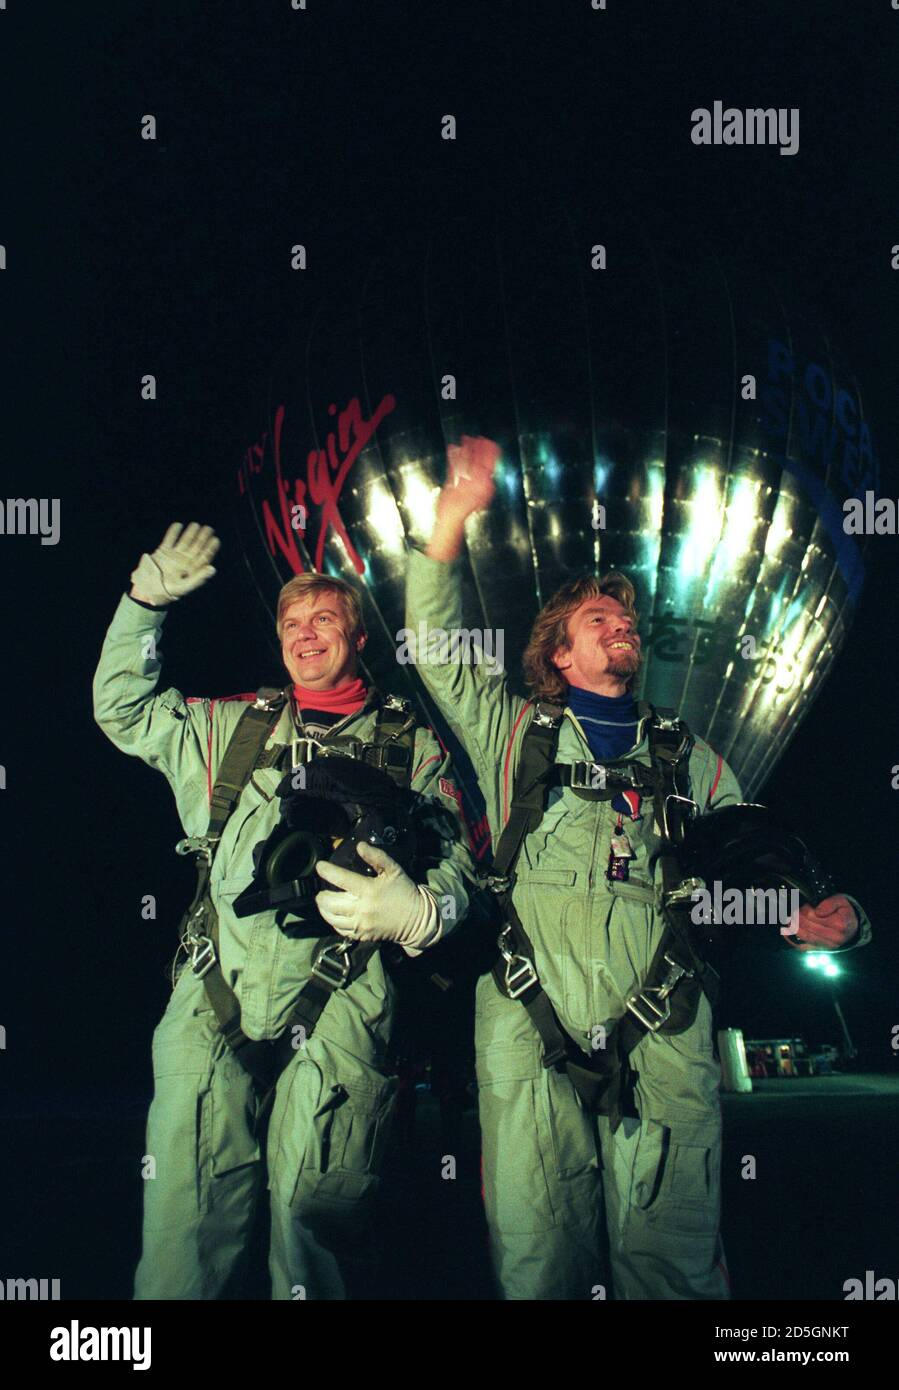 Virgin Atlantic Chairman Richard Branson (R) and co-pilot Per Lindstrand smile and wave to a cheering crowd of 10,000 just before lift-off from Miyakonojo, southern Japan early January 16, 1991 in their attempt to become the first to cross the Pacific Ocean by hot-air balloon.  Reuters/Eriko Sugita Stock Photo